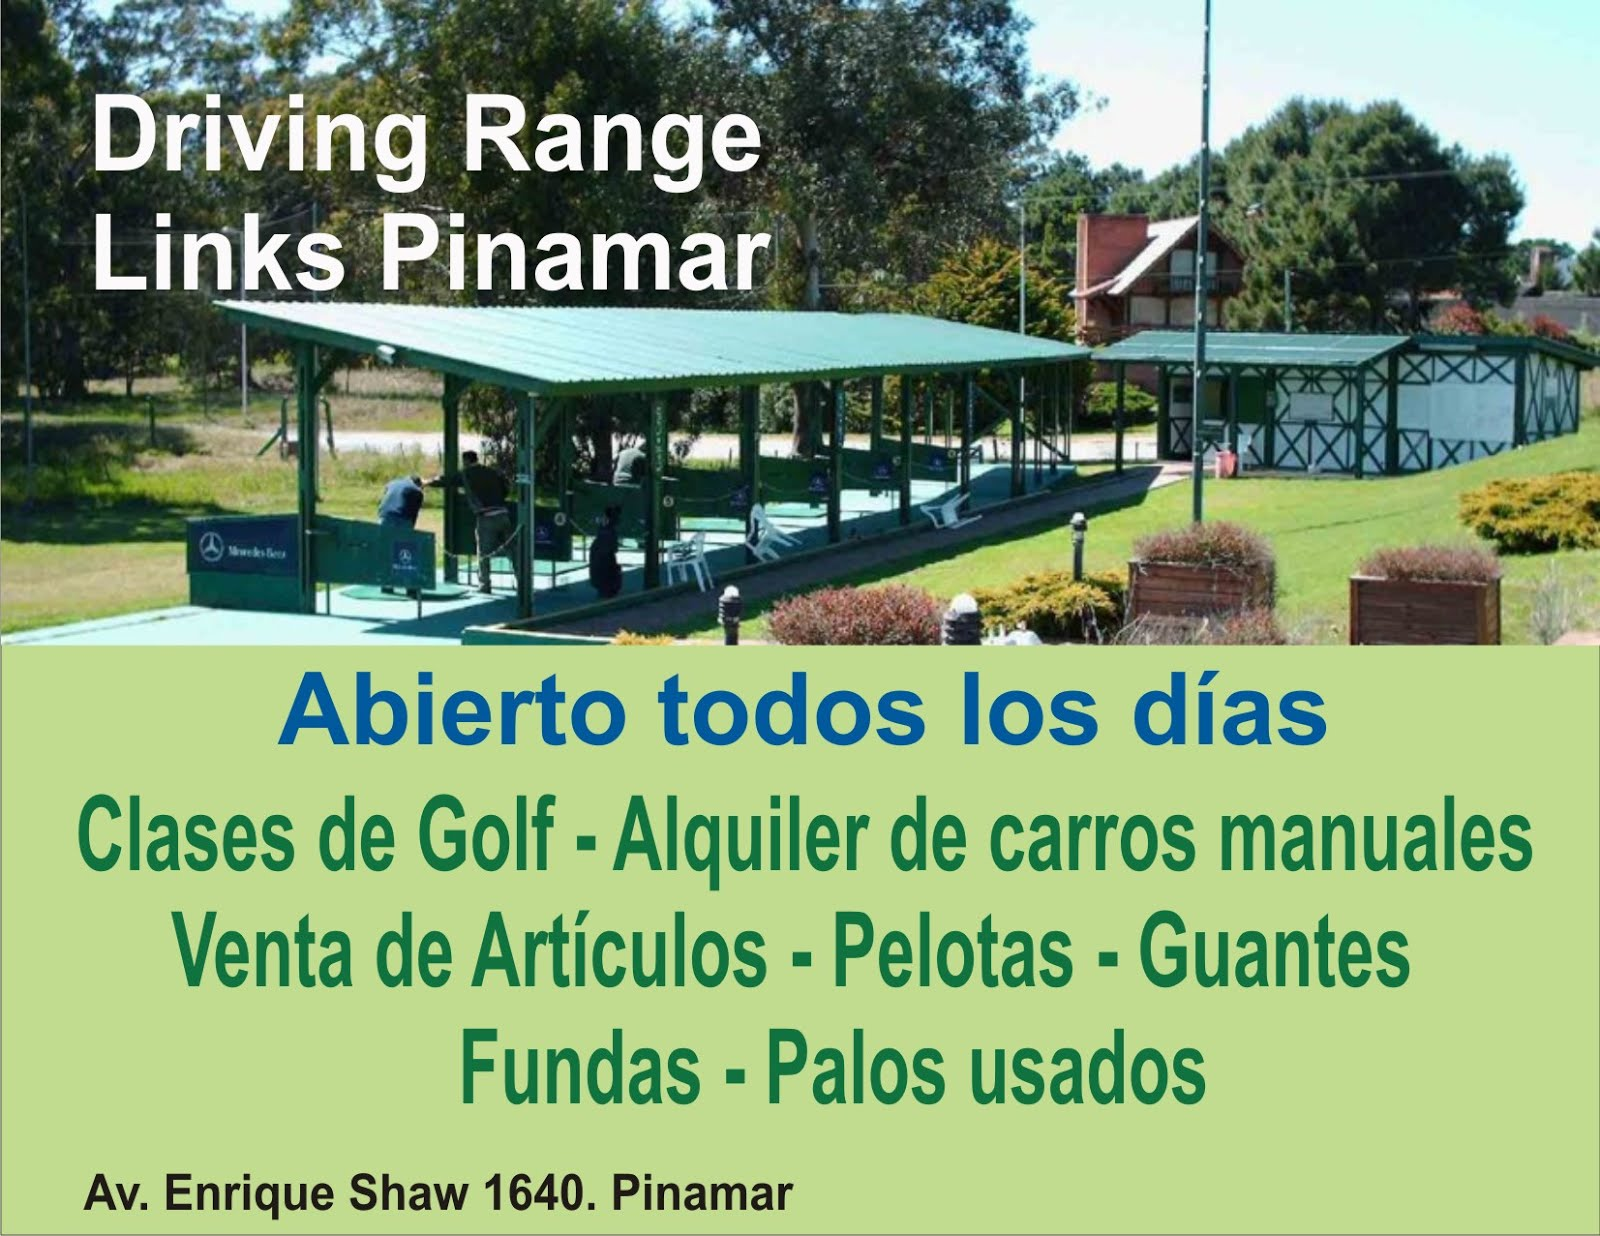 Driving Range Links Pinamar